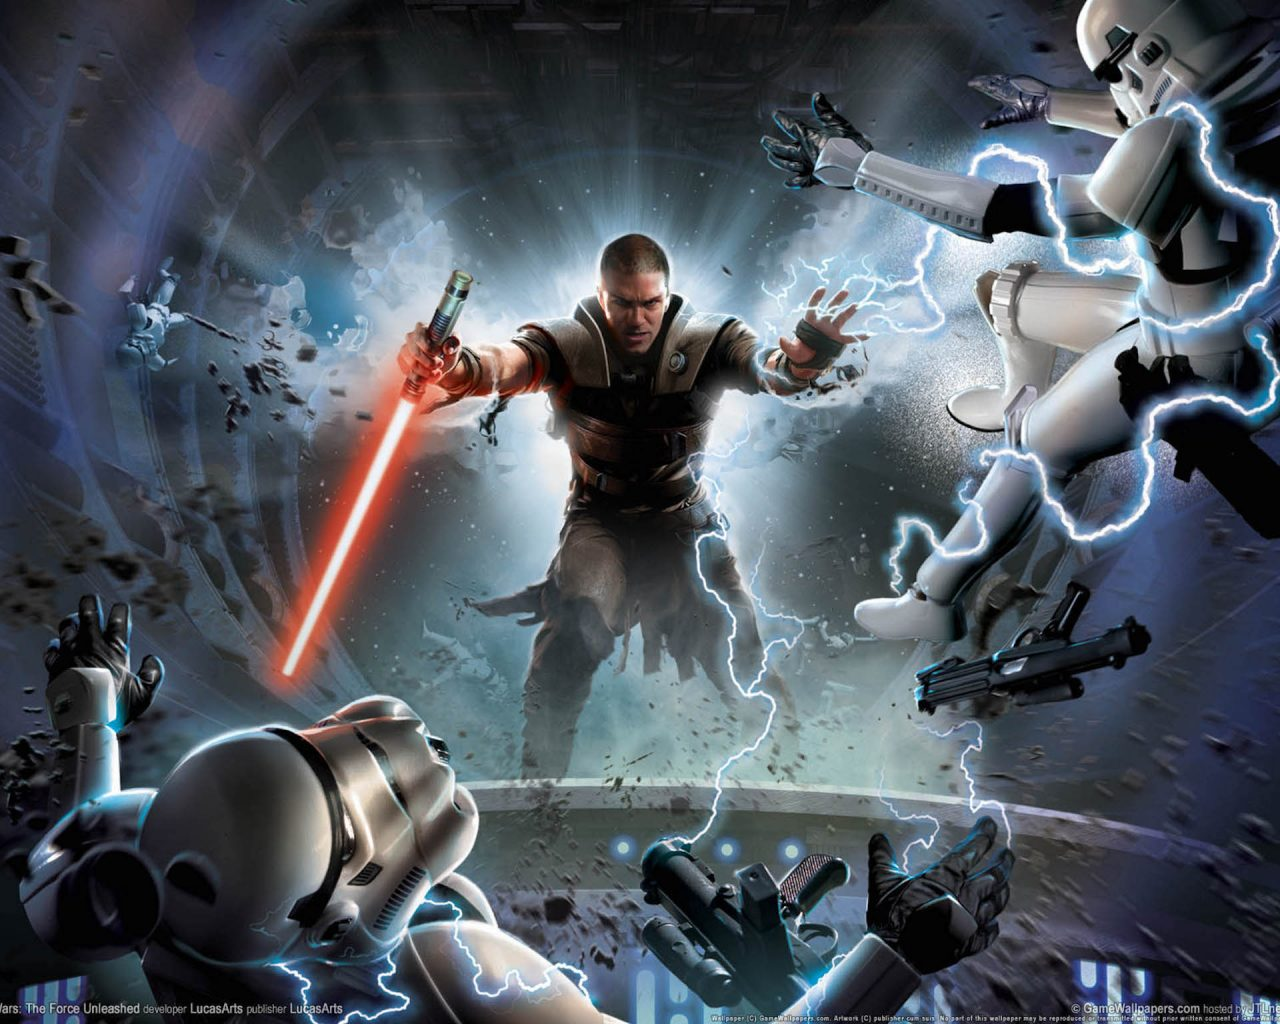 Star Wars: The Force Unleashed Wallpaper | HD Background